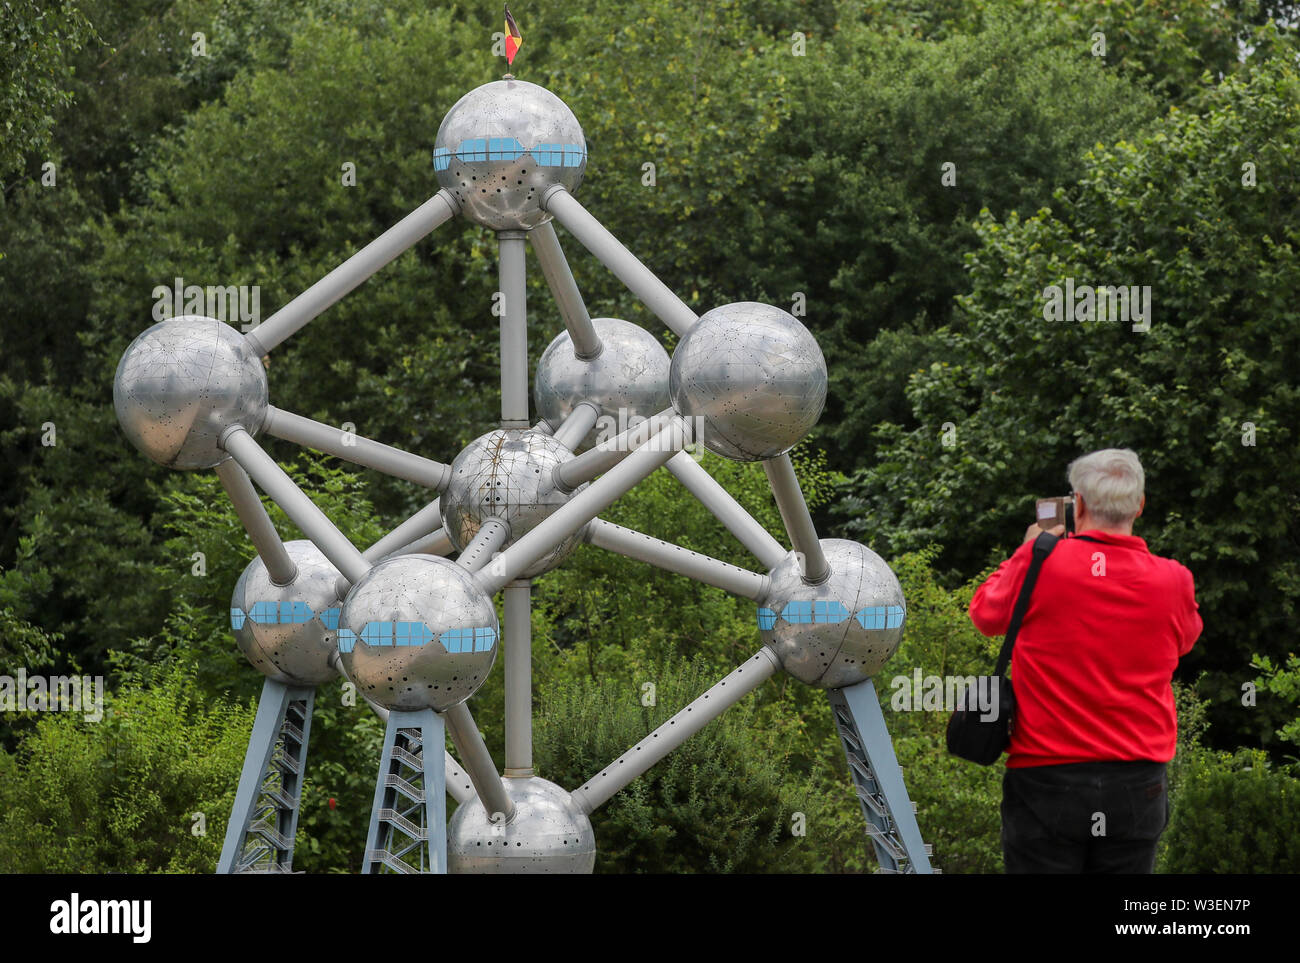 Lichtenstein, Germany. 15th July, 2019. A visitor photographs the model of the Brussels Atomium in the miniworld Lichtenstein/Saxony. Visitors can visit Dresden's Frauenkirche, the Eiffel Tower and the Taj Mahal on foot. Opened on 15 July 1999, the miniature park is now 20 years old. In the meantime, the initial 60 buildings have grown to more than 100. A good 1.9 million people have already visited the miniworld. Credit: Jan Woitas/dpa-Zentralbild/dpa/Alamy Live News - Stock Image